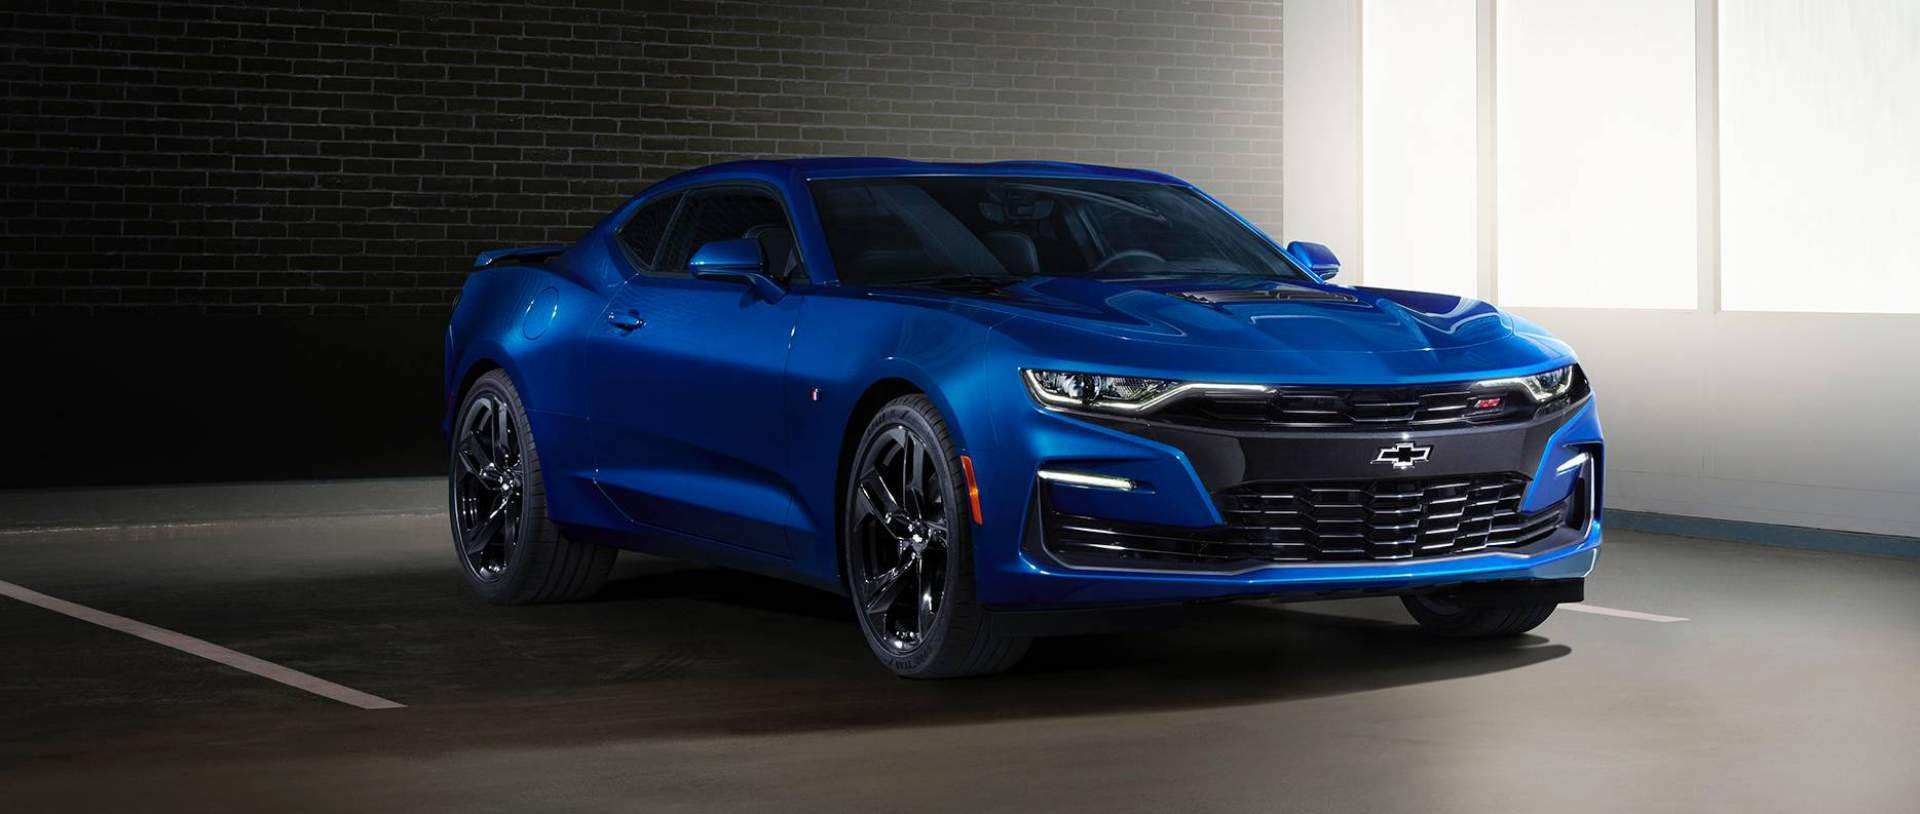 26 New 2020 Chevy Camaro Review for 2020 Chevy Camaro